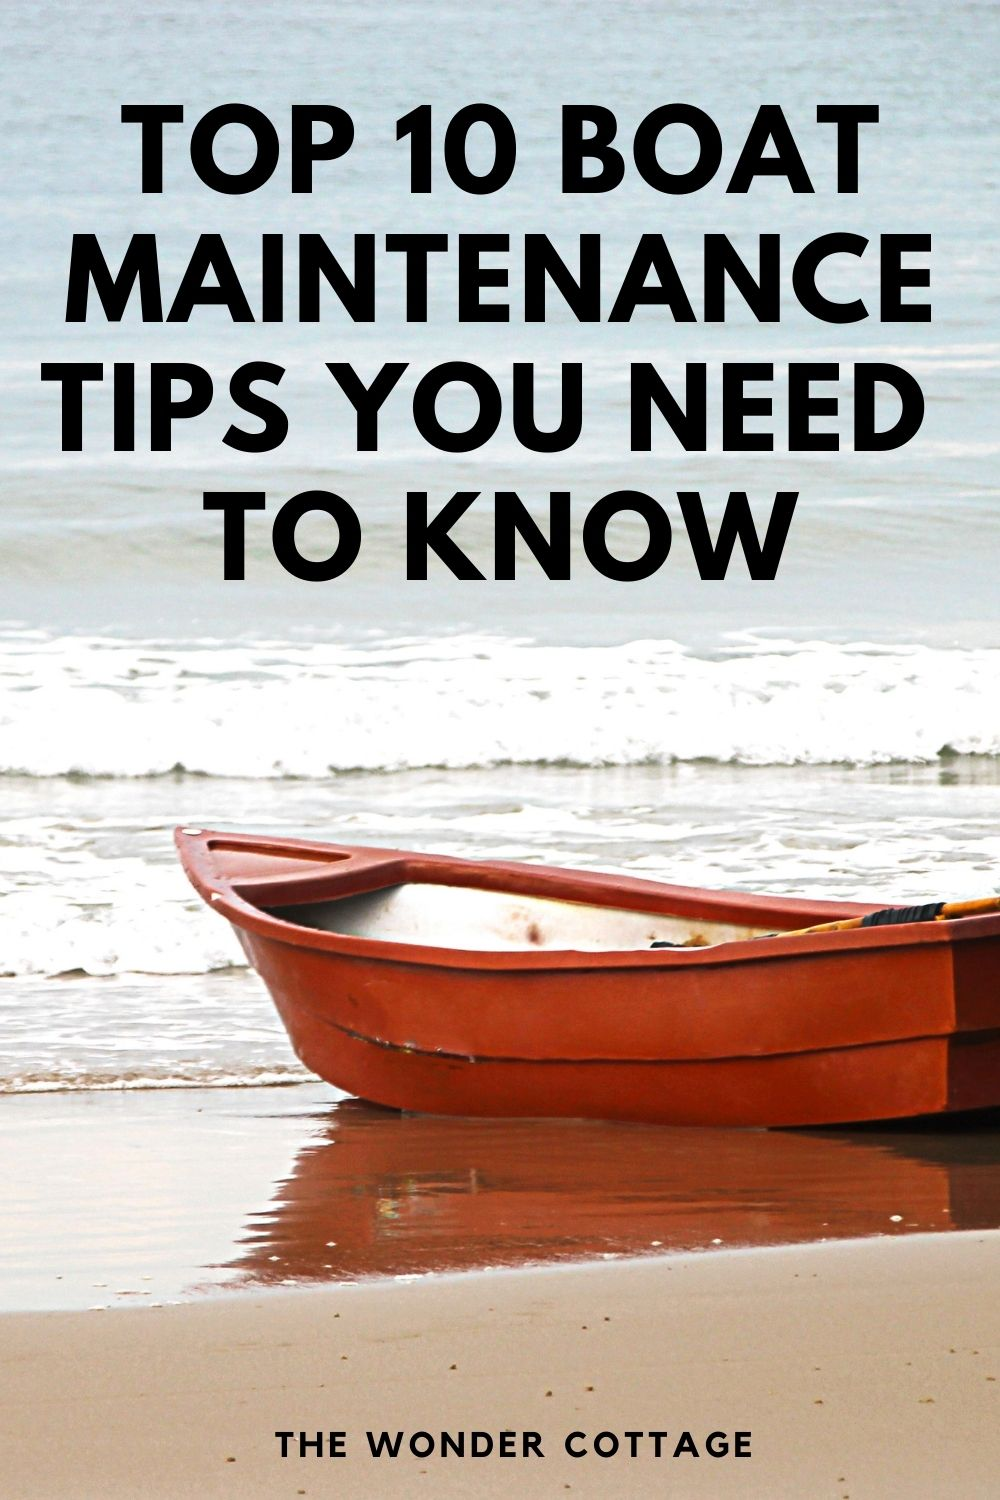 top 10 boat maintenance tips you need to know